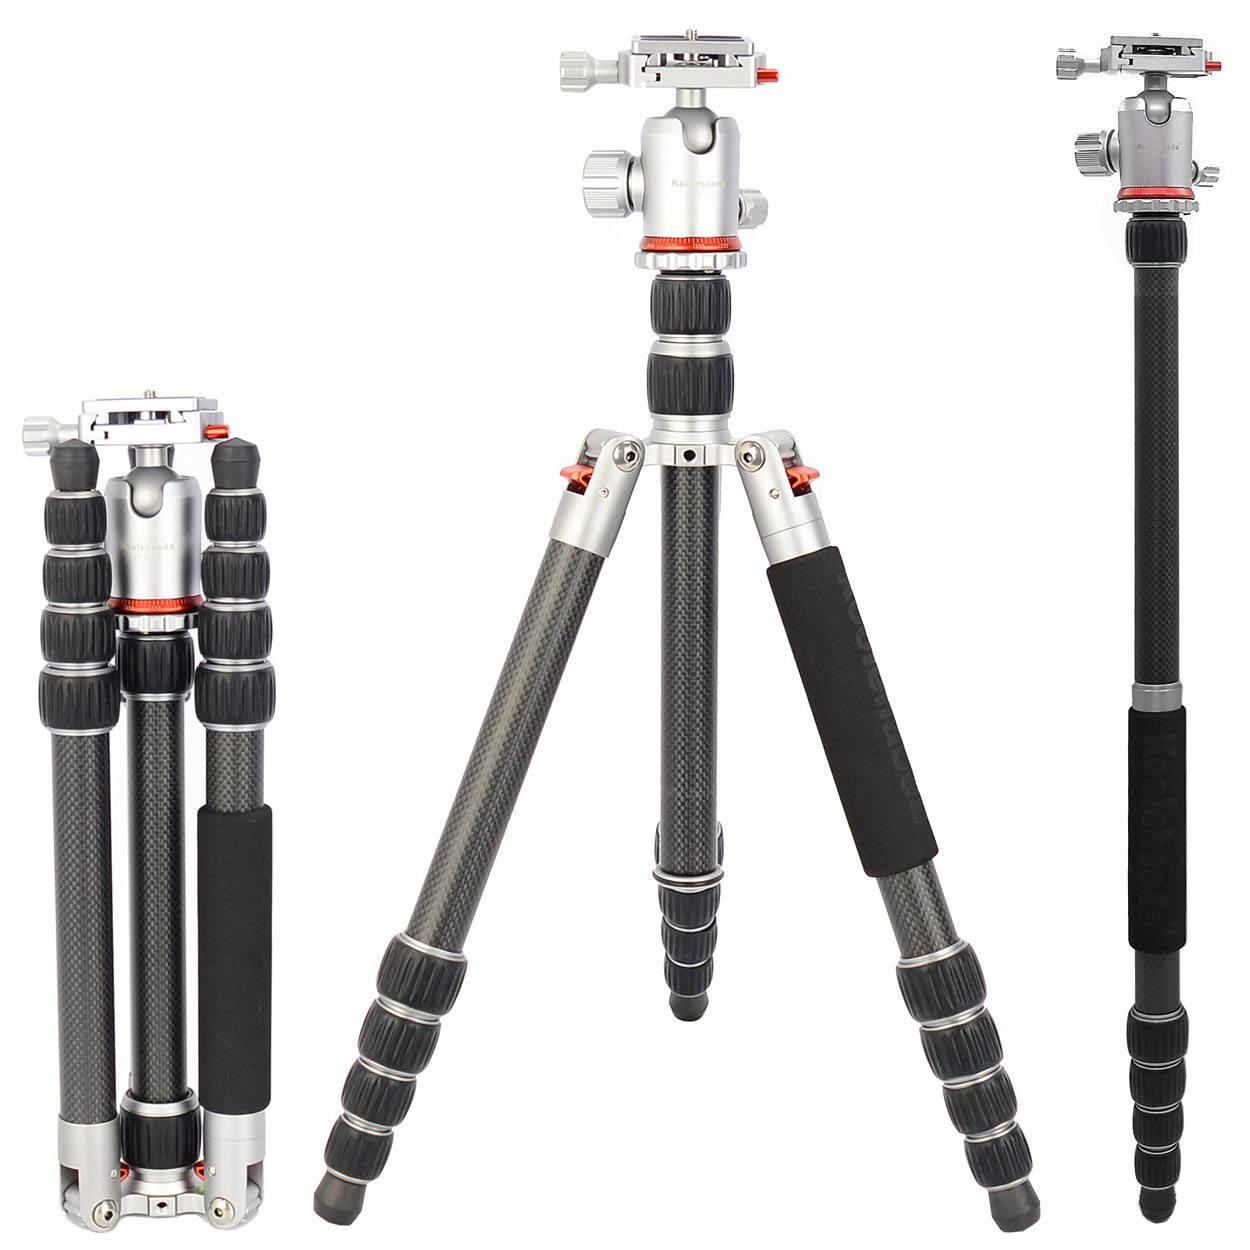 Koolehaoda Portable Lightweight Carbon Fiber 63 inches/160 Centimeters Camera Tripod Monopod with 360 Degree Ball Head for DSLR Camera,Video Camcorder, Weighing in at just 1.25kg/2.75lbs